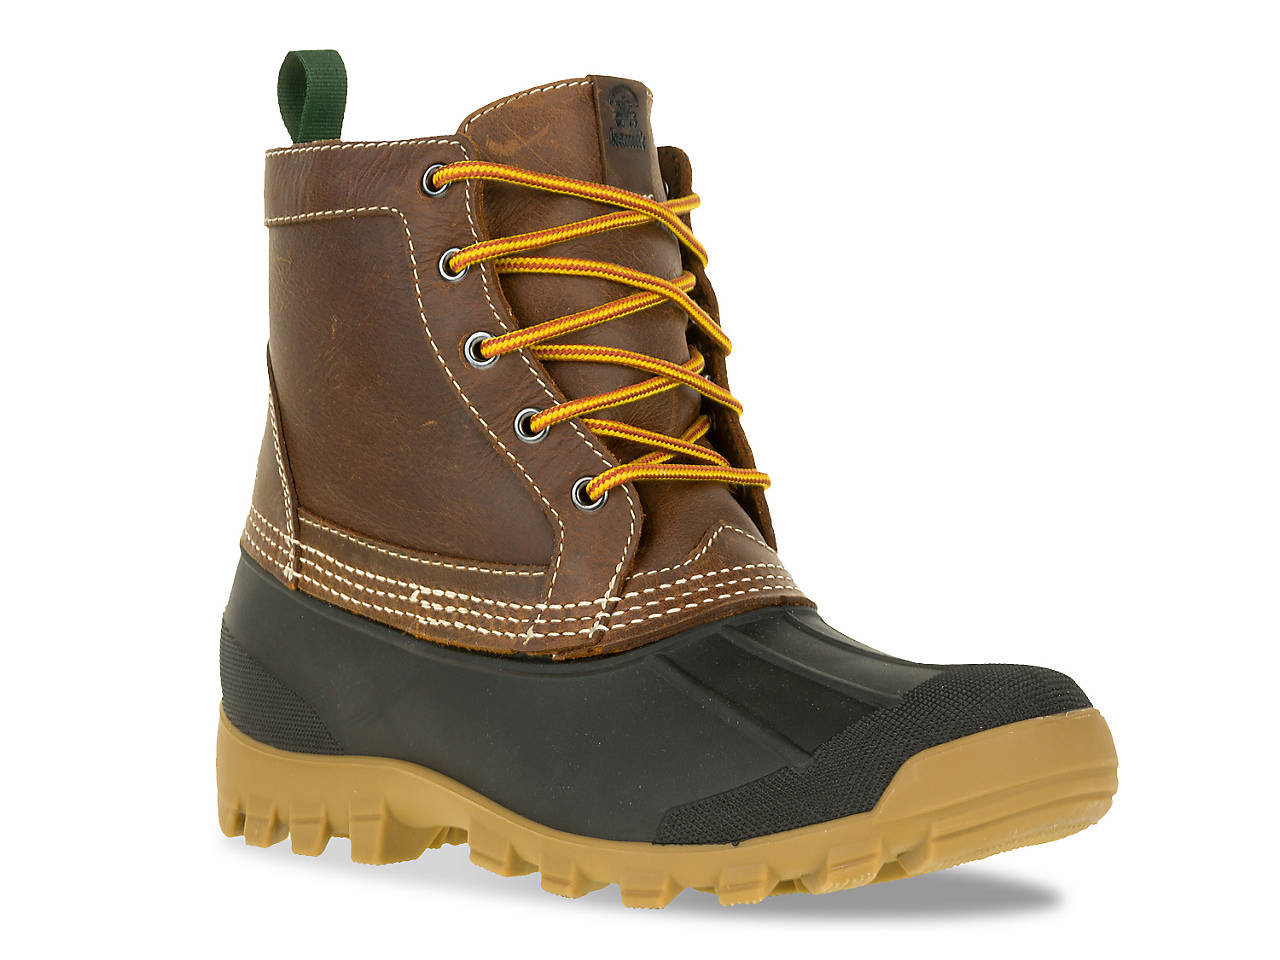 c557005b233 Yukon 5 Duck Boot